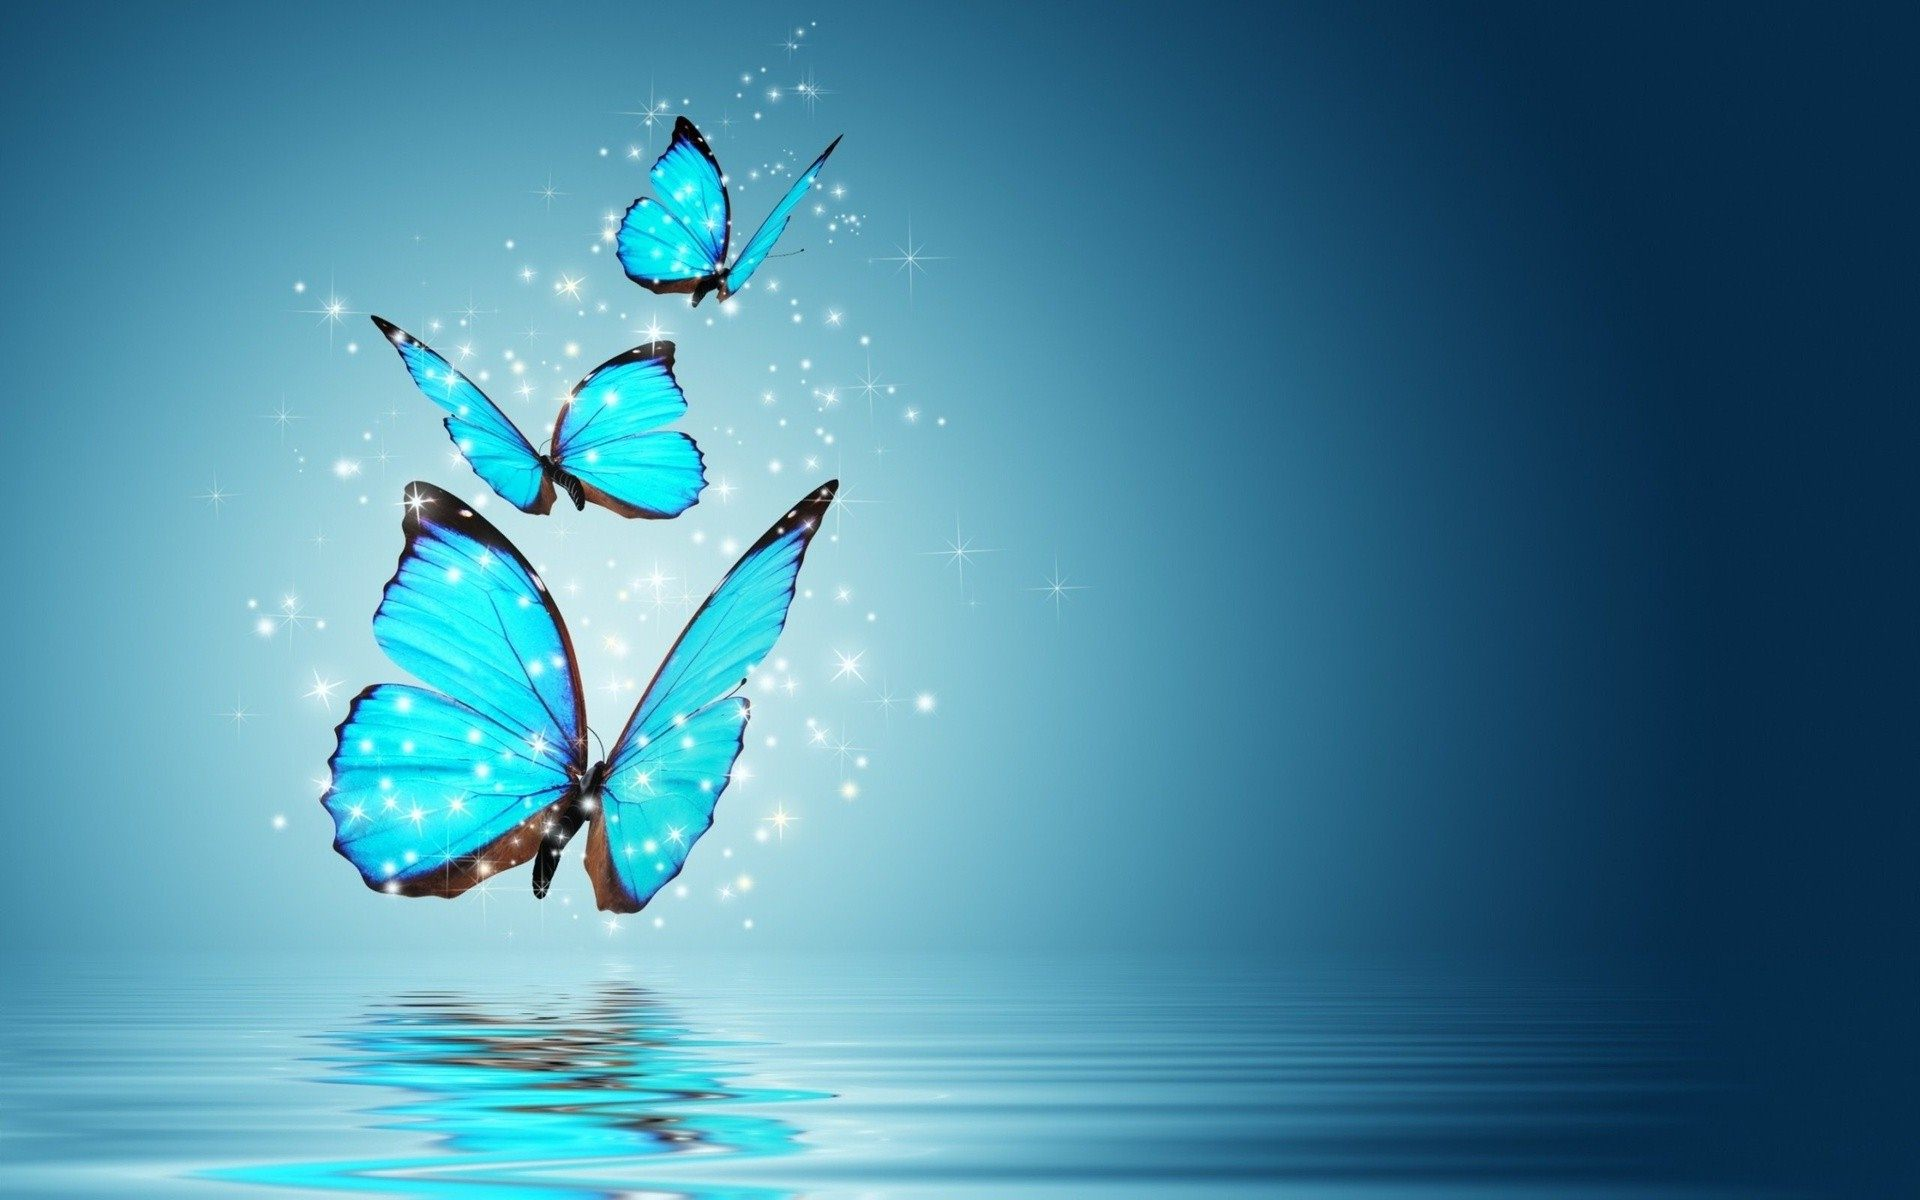 Abstract Blue Butterfly Insect Hd Wallpapers High Resolution